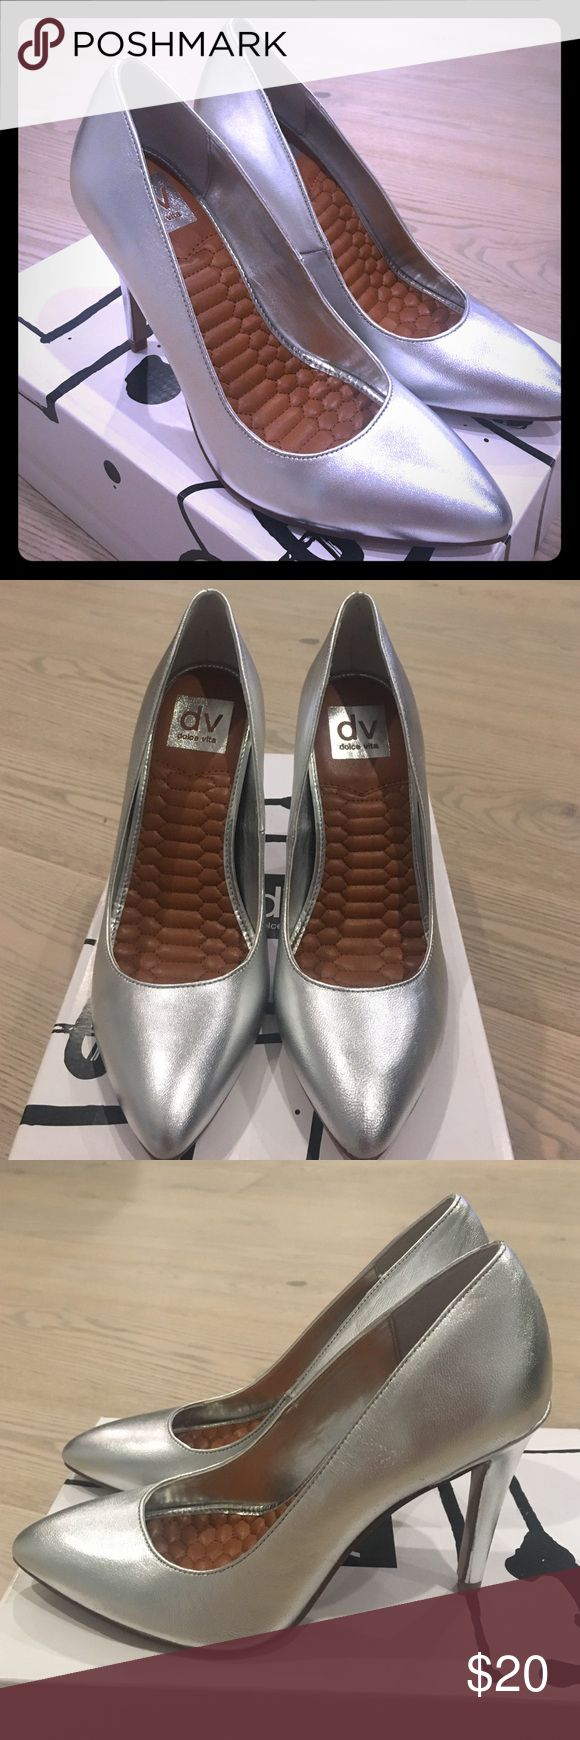 "Dolce Vita Silver Metallic Leather Size 7 Pumps Women's Dolce Vita Oaklee Silver Metallic Leather High Heel Pumps, NEW, Size 7. With box and original order form. Heel height: 4"" Dolce Vita Shoes Heels"